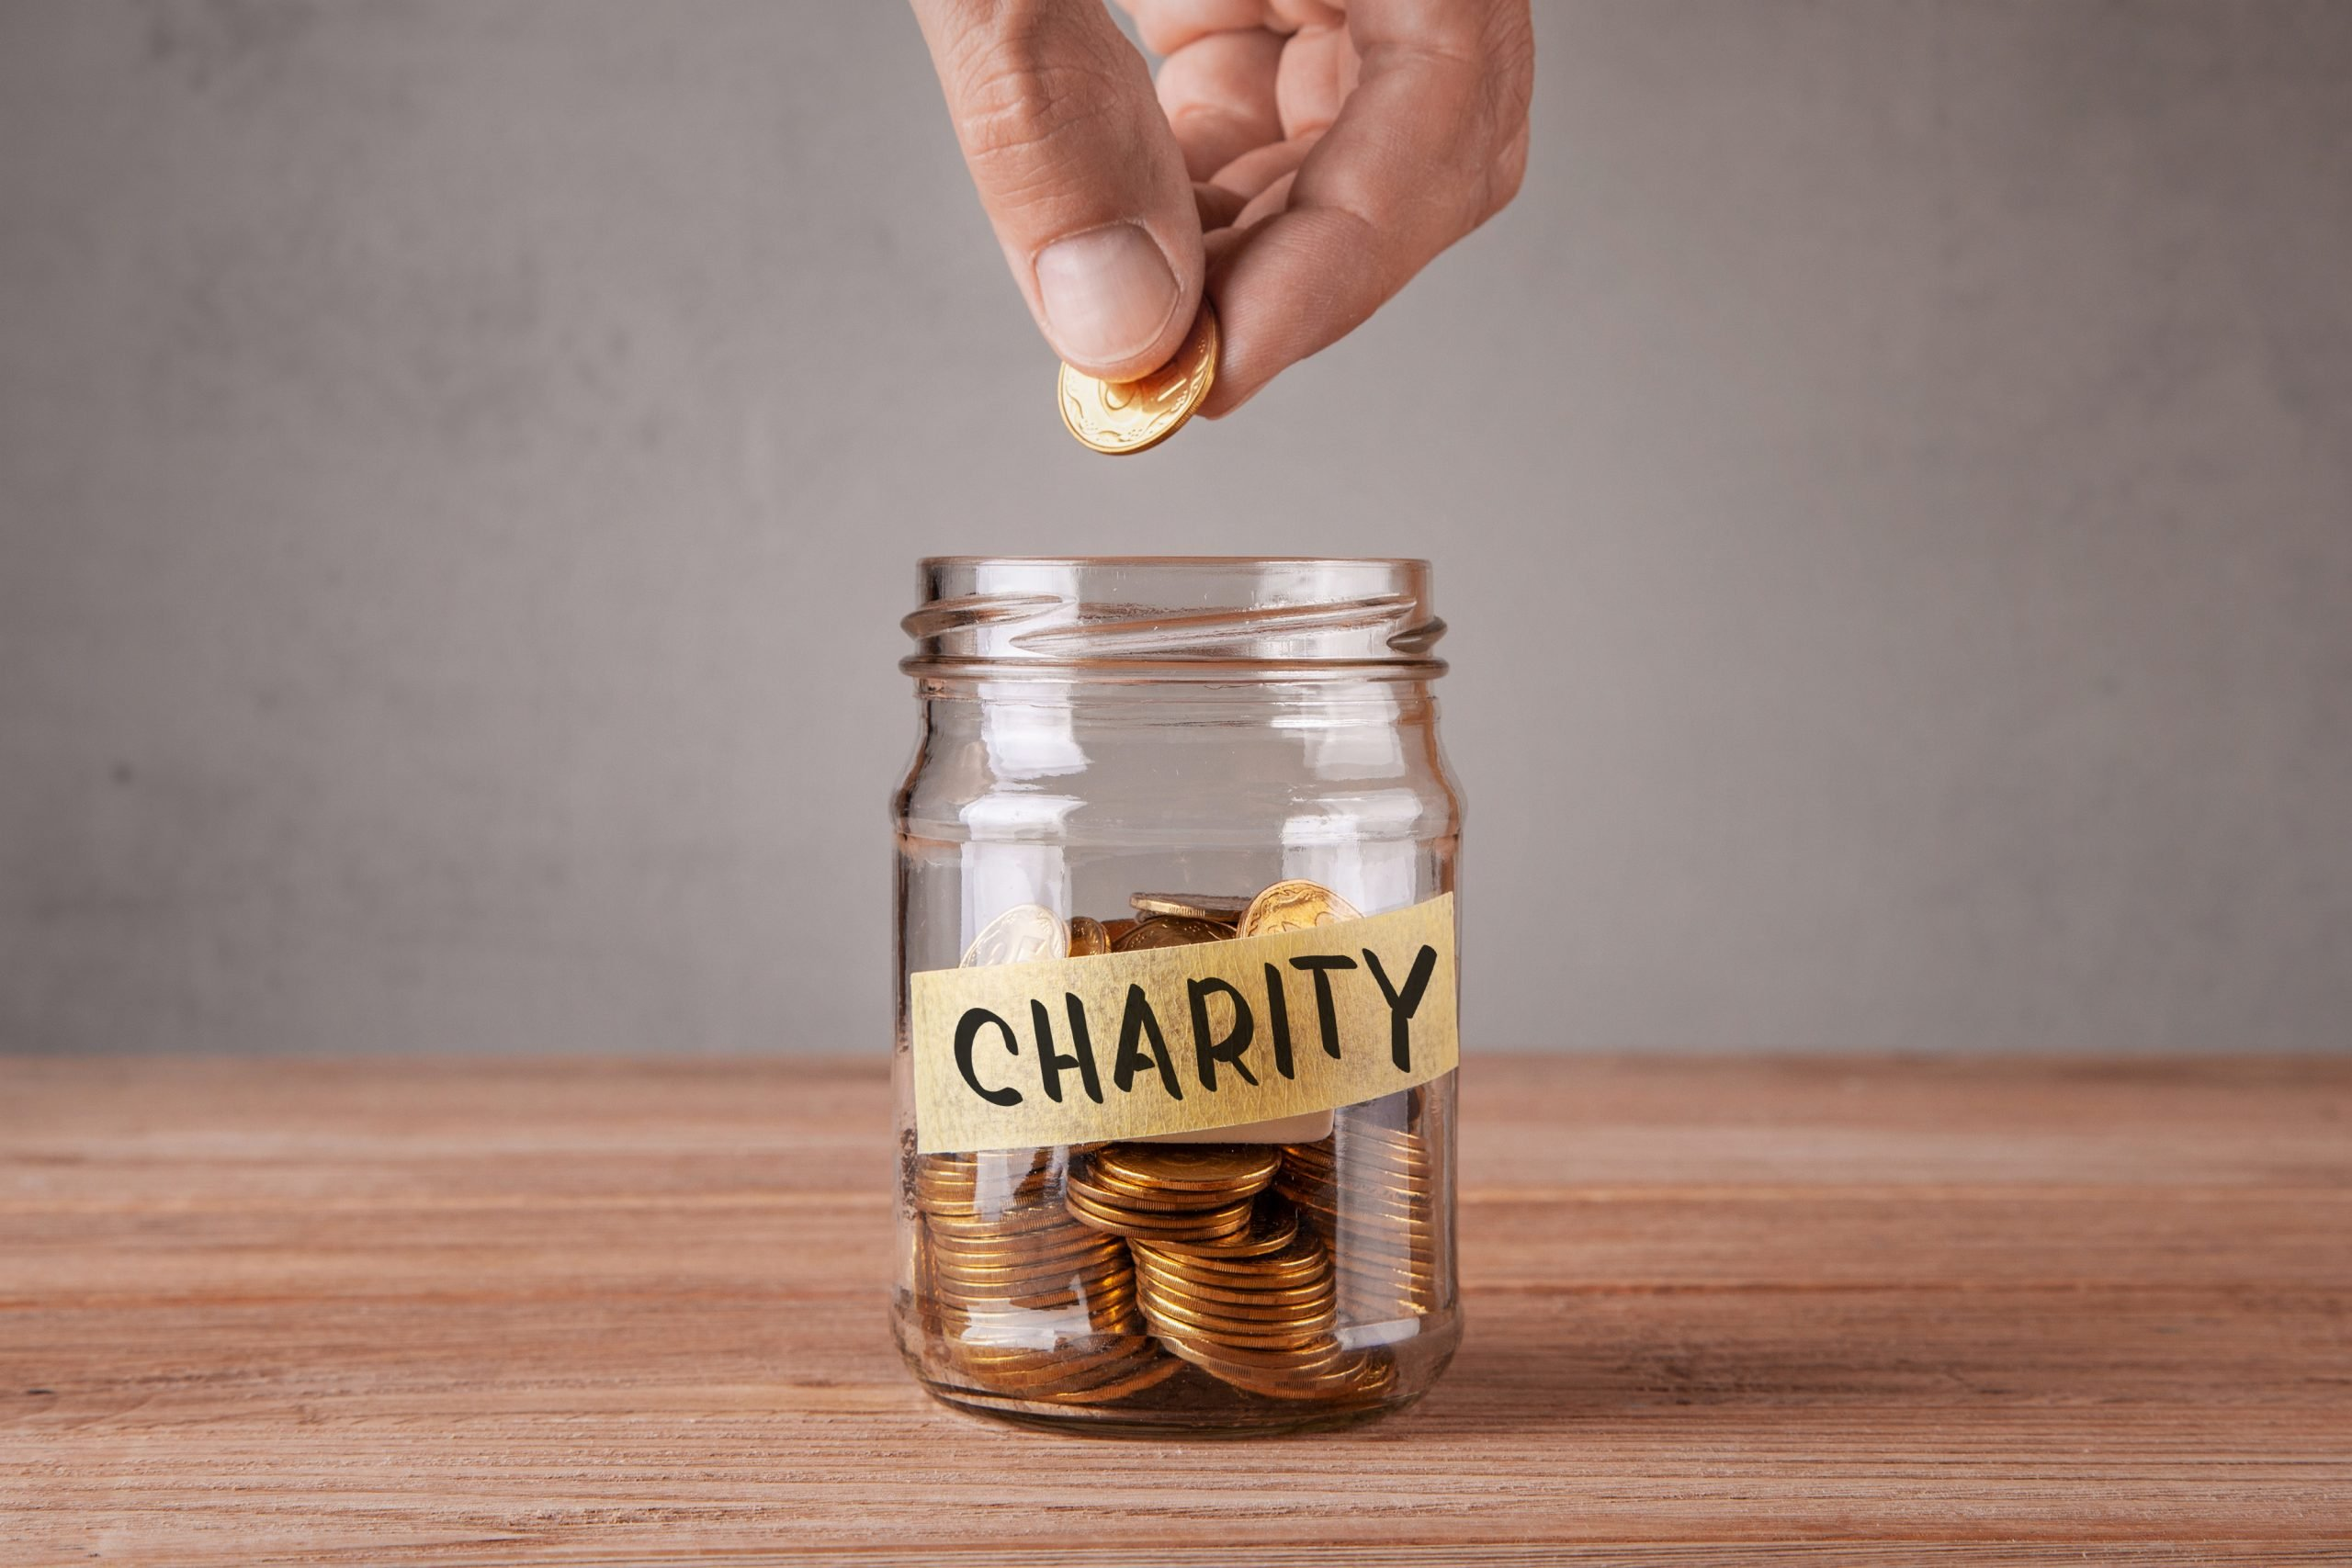 qualified charitable donations SECURE Act CARES Act financial advisor QCDs donations